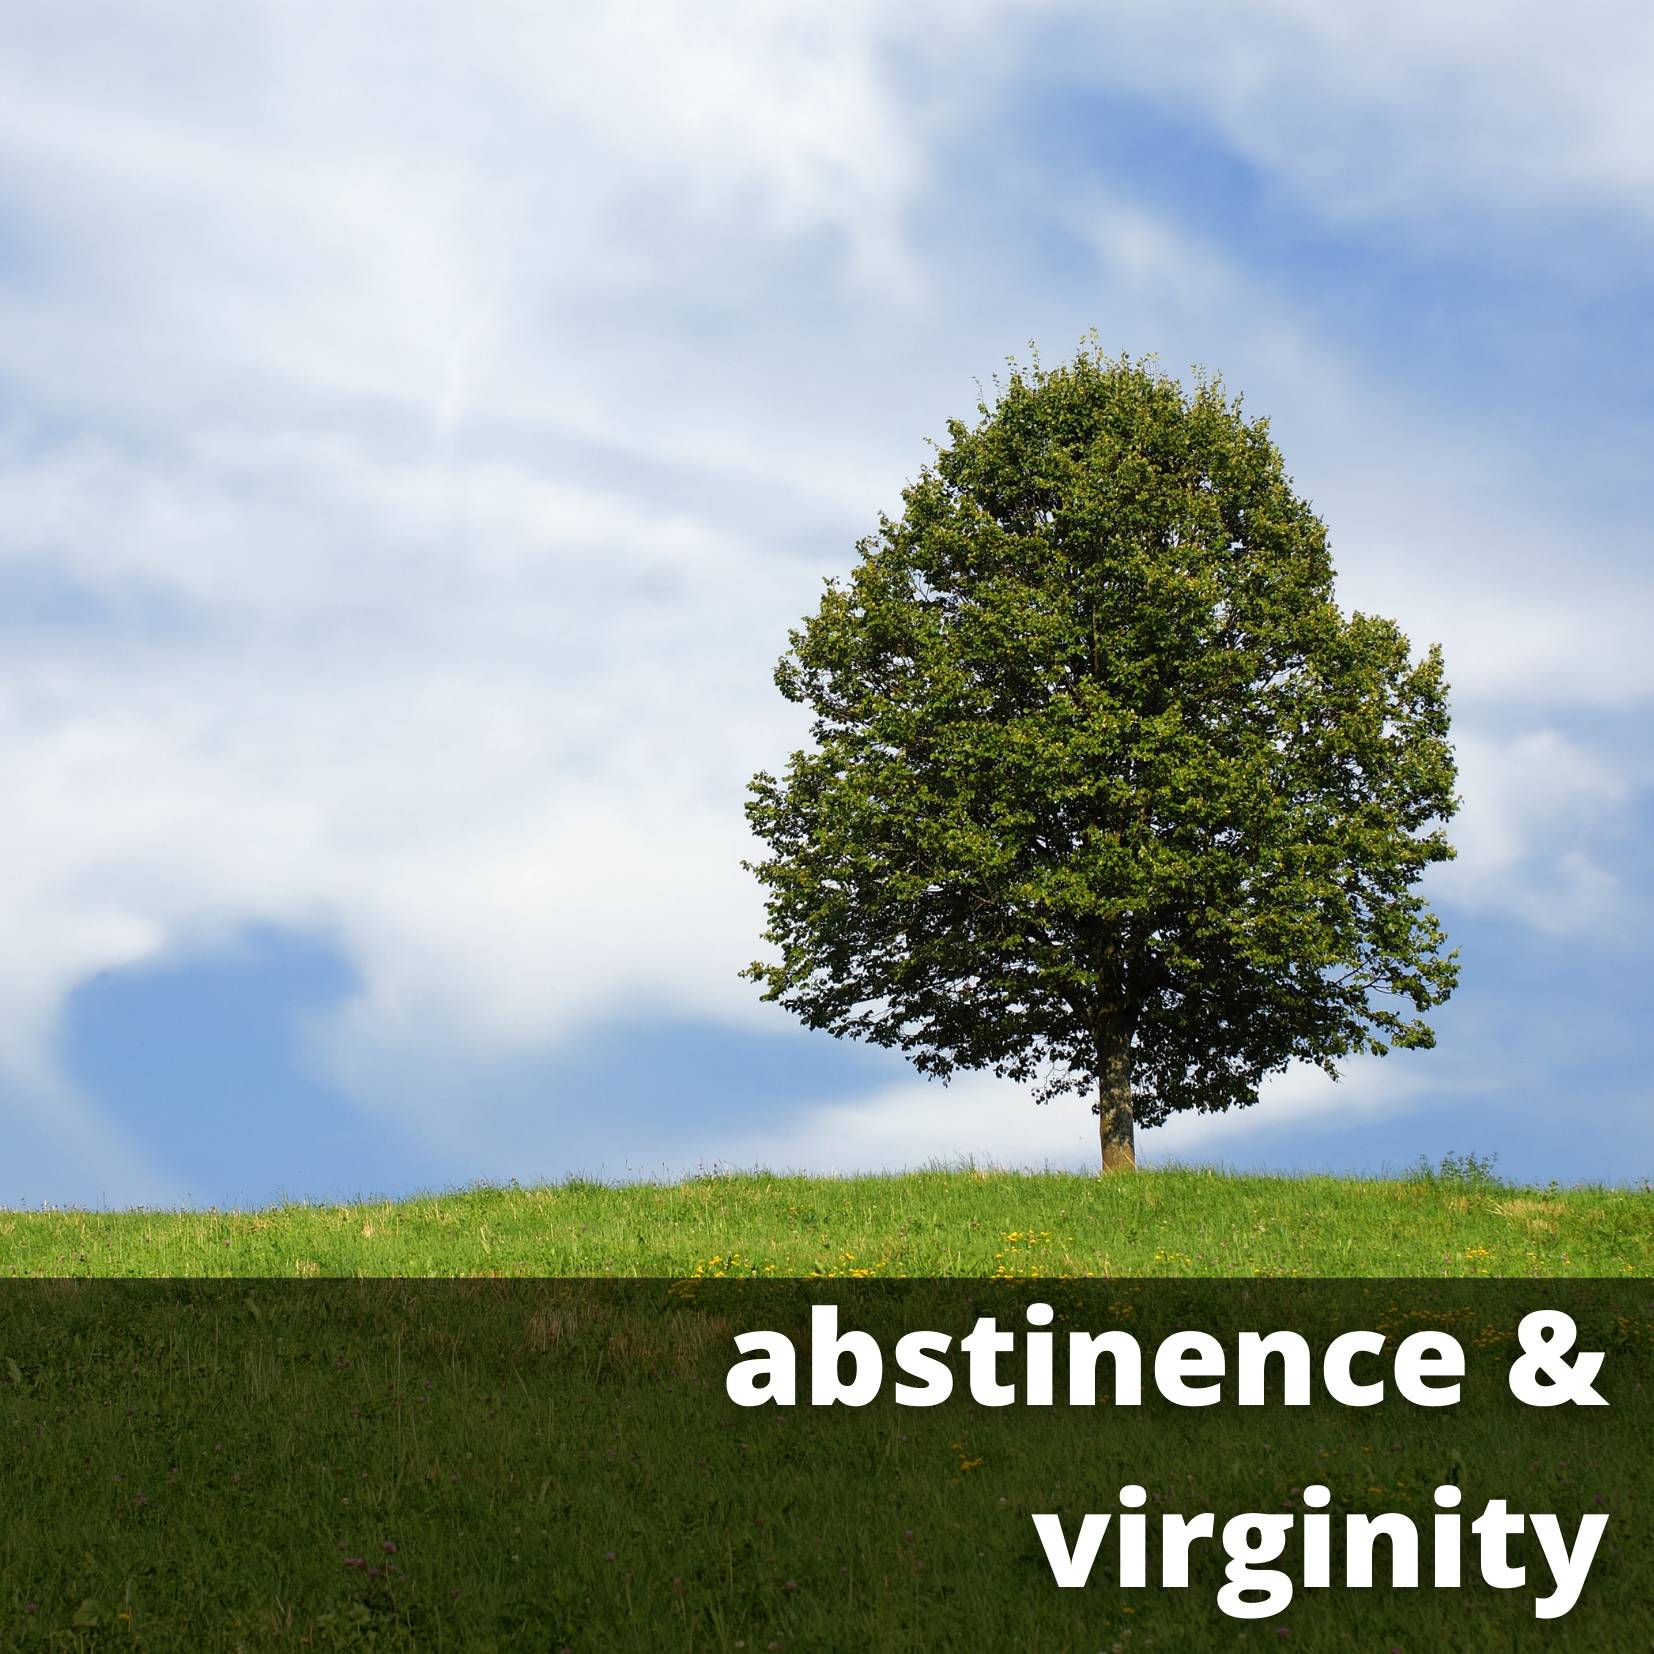 abstinence and virginity